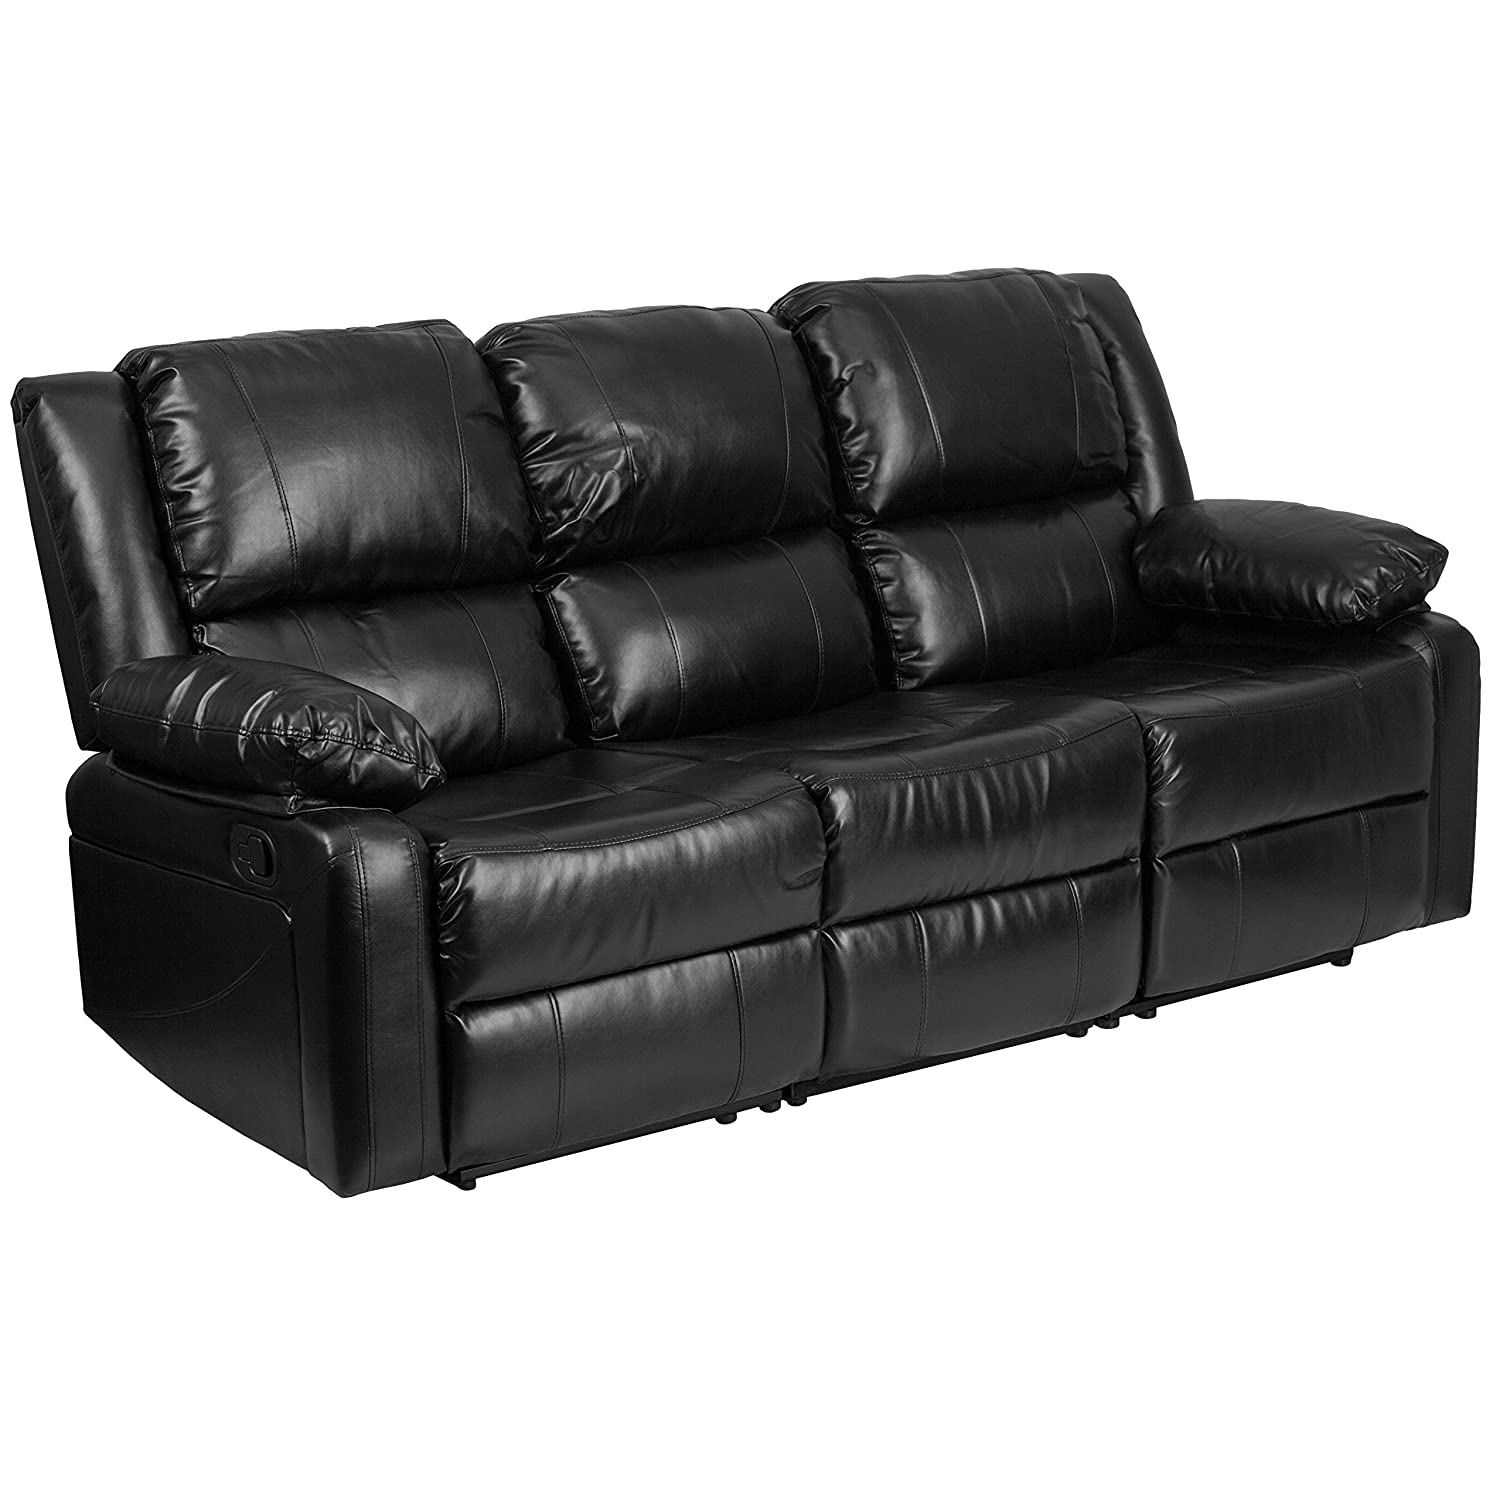 Amazon.com Flash Furniture Harmony Series Black Leather Sofa with Two Built-In Recliners Kitchen u0026 Dining  sc 1 st  Amazon.com : reclining leather couches - islam-shia.org